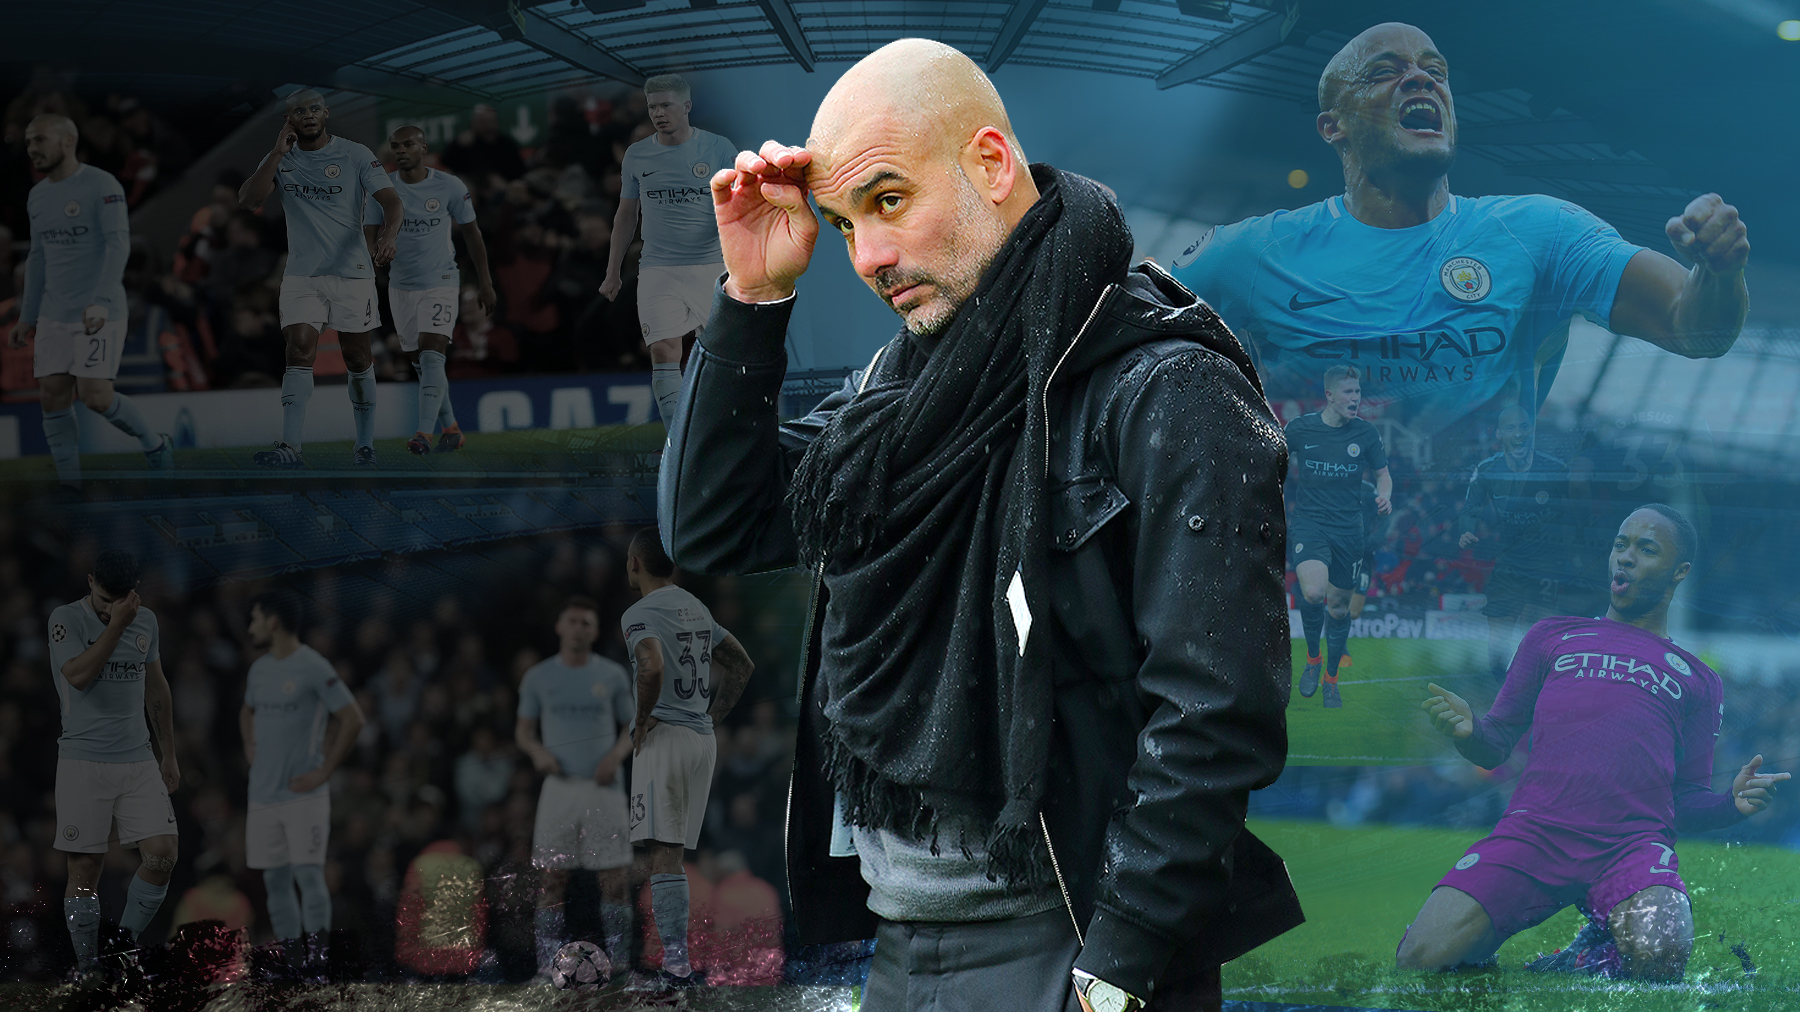 Forget the haters: Manchester City & Pep Guardiola are still greats despite fortnight from hell